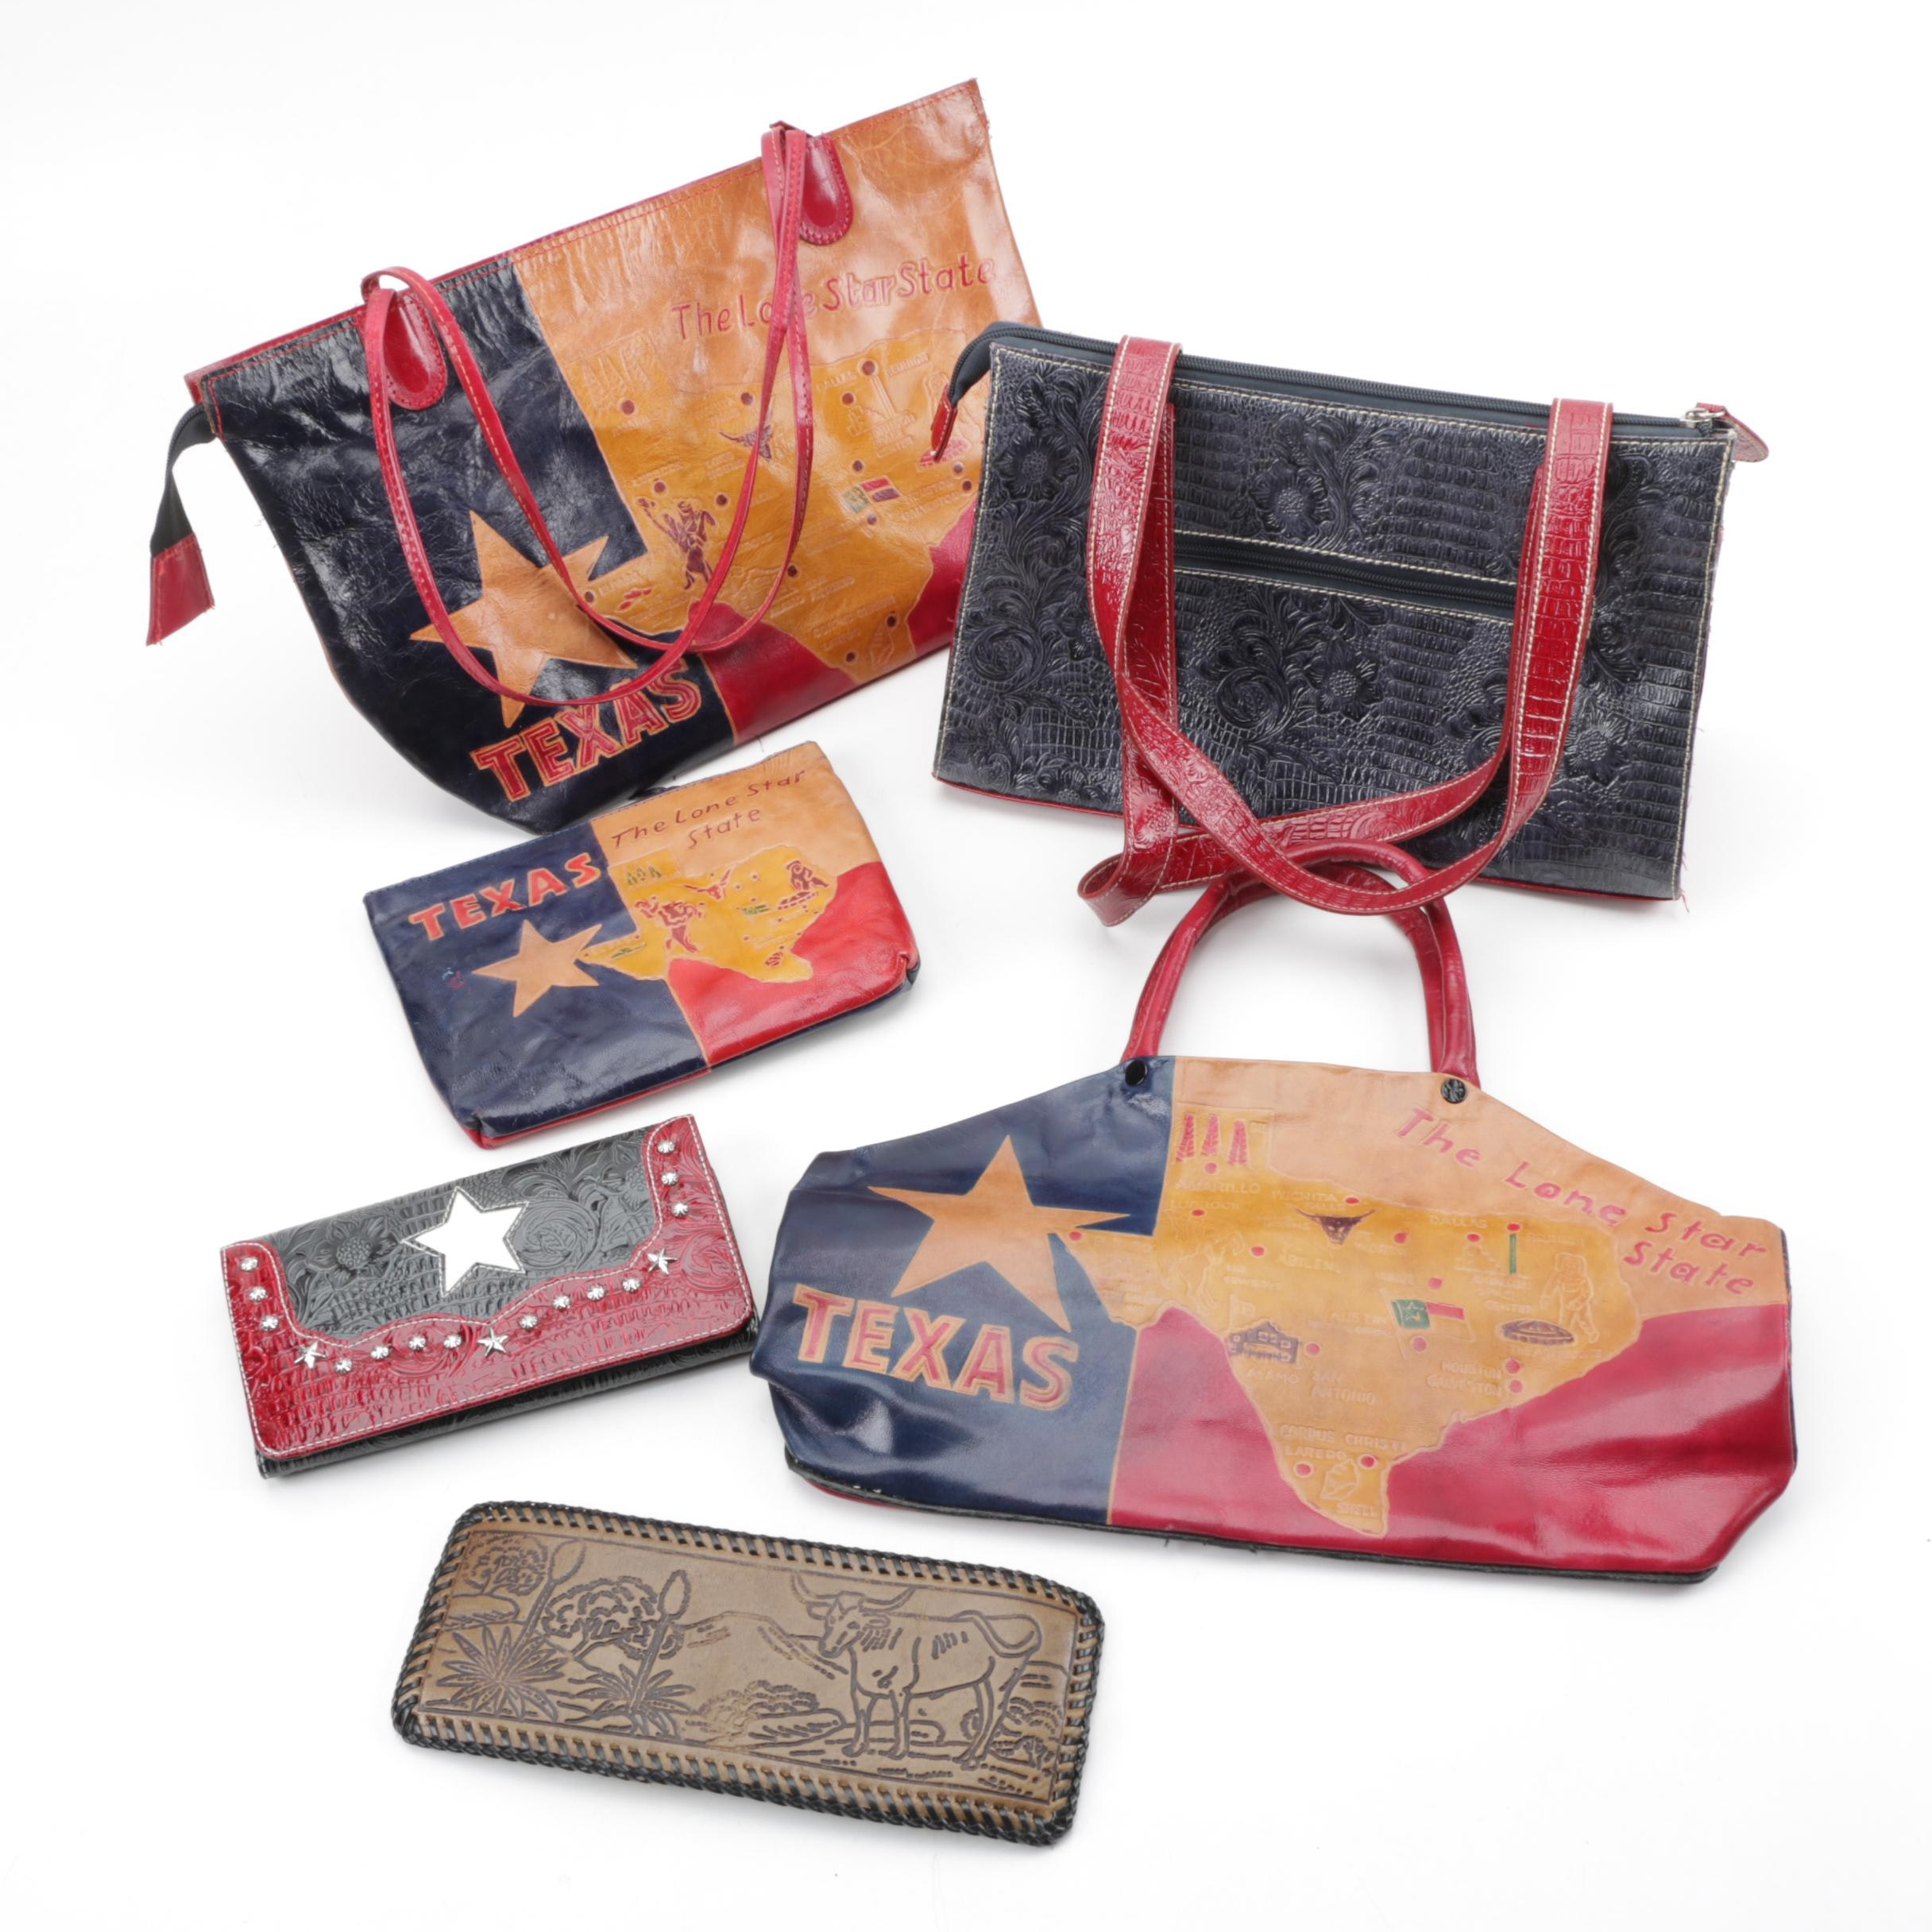 Lone Star Handbags and Accessories Collection